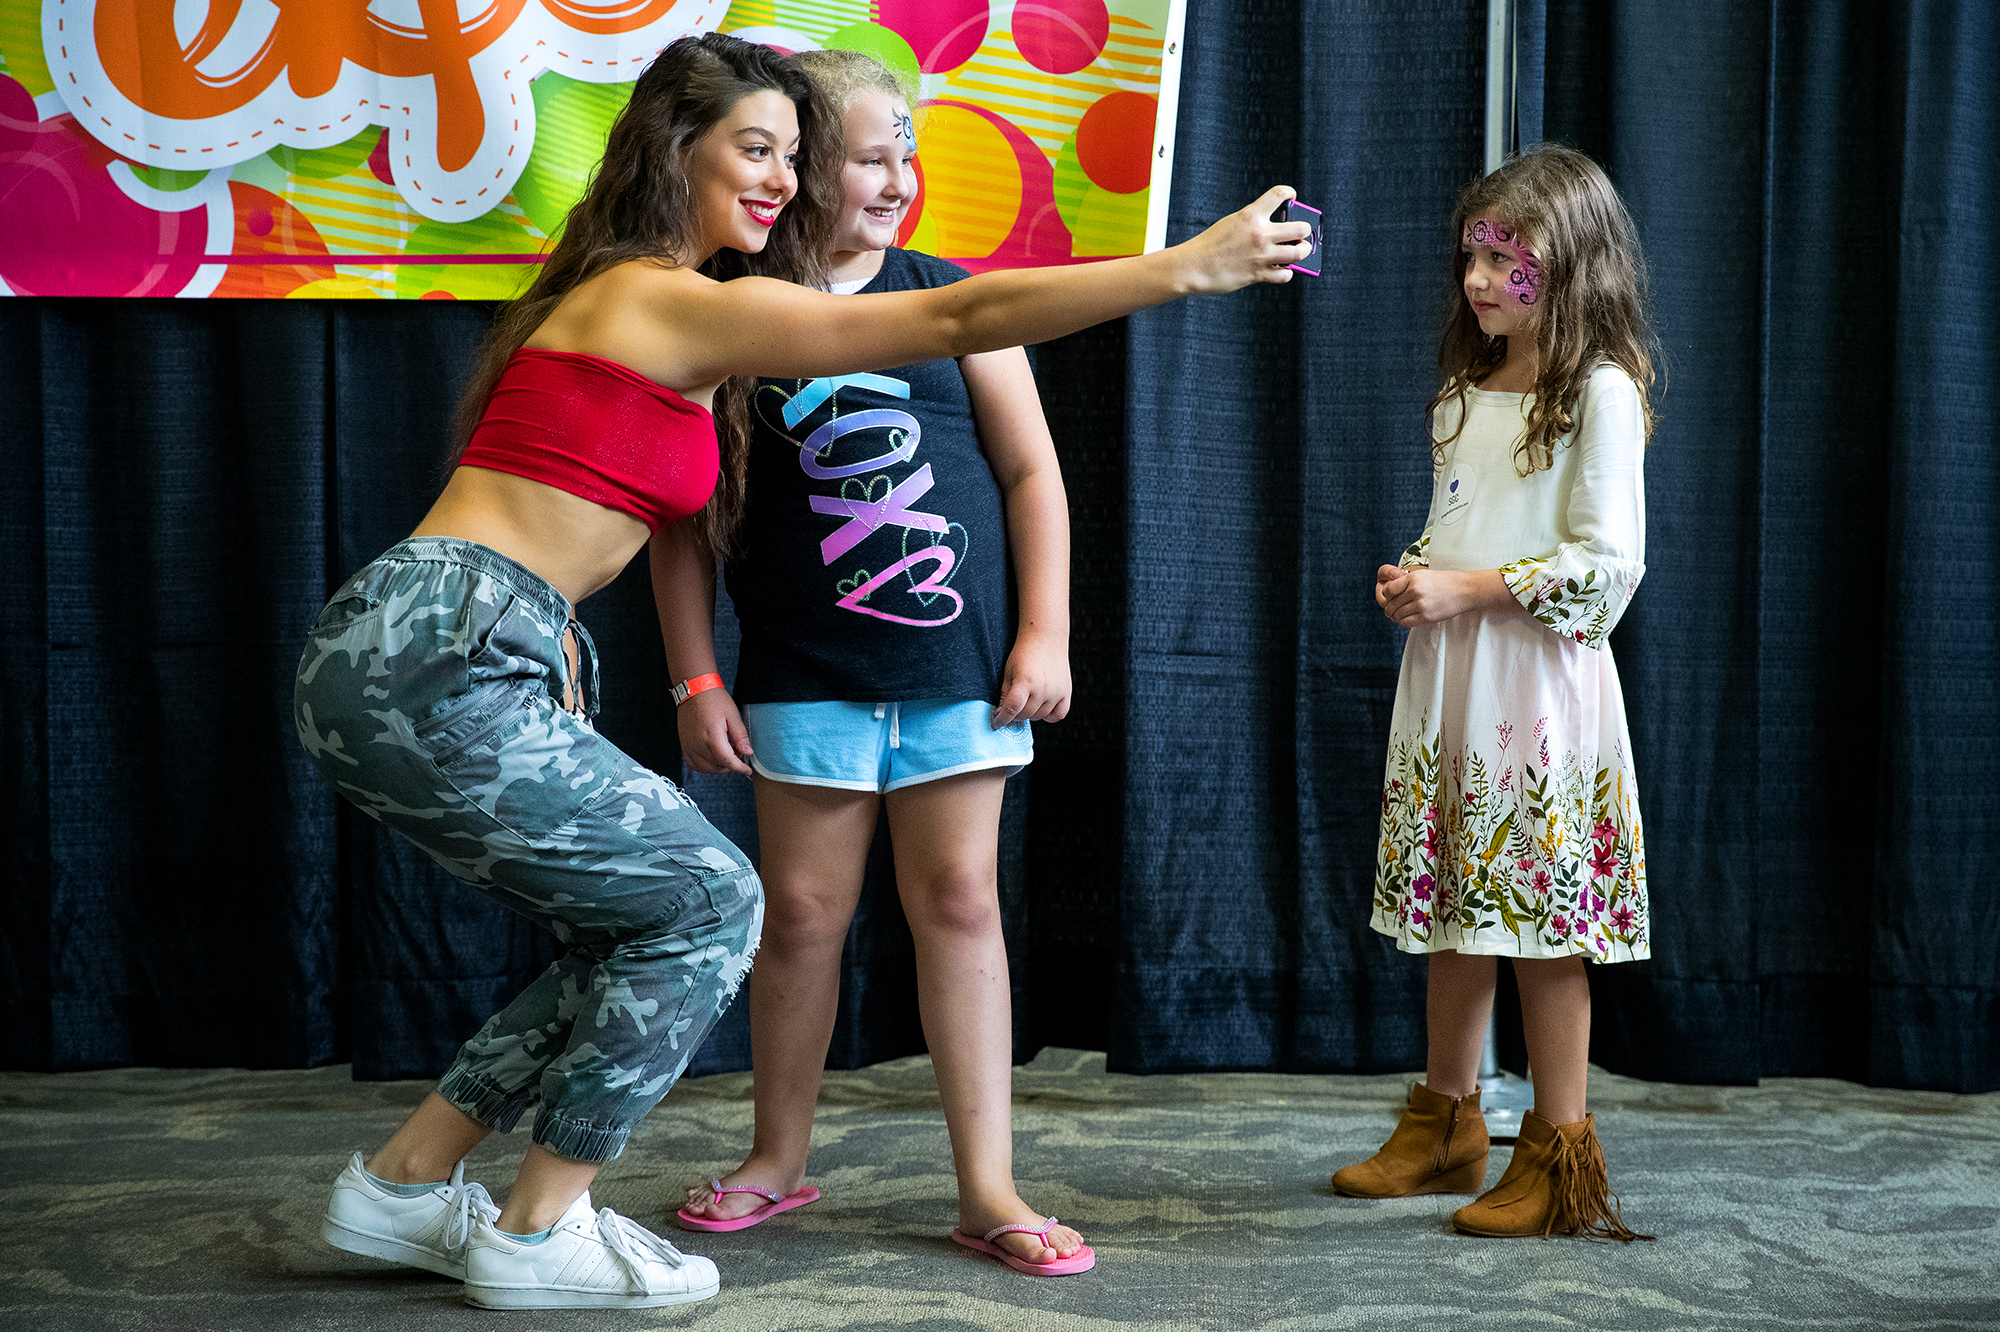 """Actress Kira Kosarin, known for her role as Phoebe Thunderman on the Nickelodeon series """"The Thundermans,"""" poses for a selfie with Kadence White as Anna Flatt looks on during the Springfield Kidz Expo at the Bank of Springfield Center Saturday, Sept. 8, 2018. The event featured face painting, balloon animals, pictures with costume characters, magicians and on-going entertainment throughout the day. [Ted Schurter/The State Journal-Register]"""